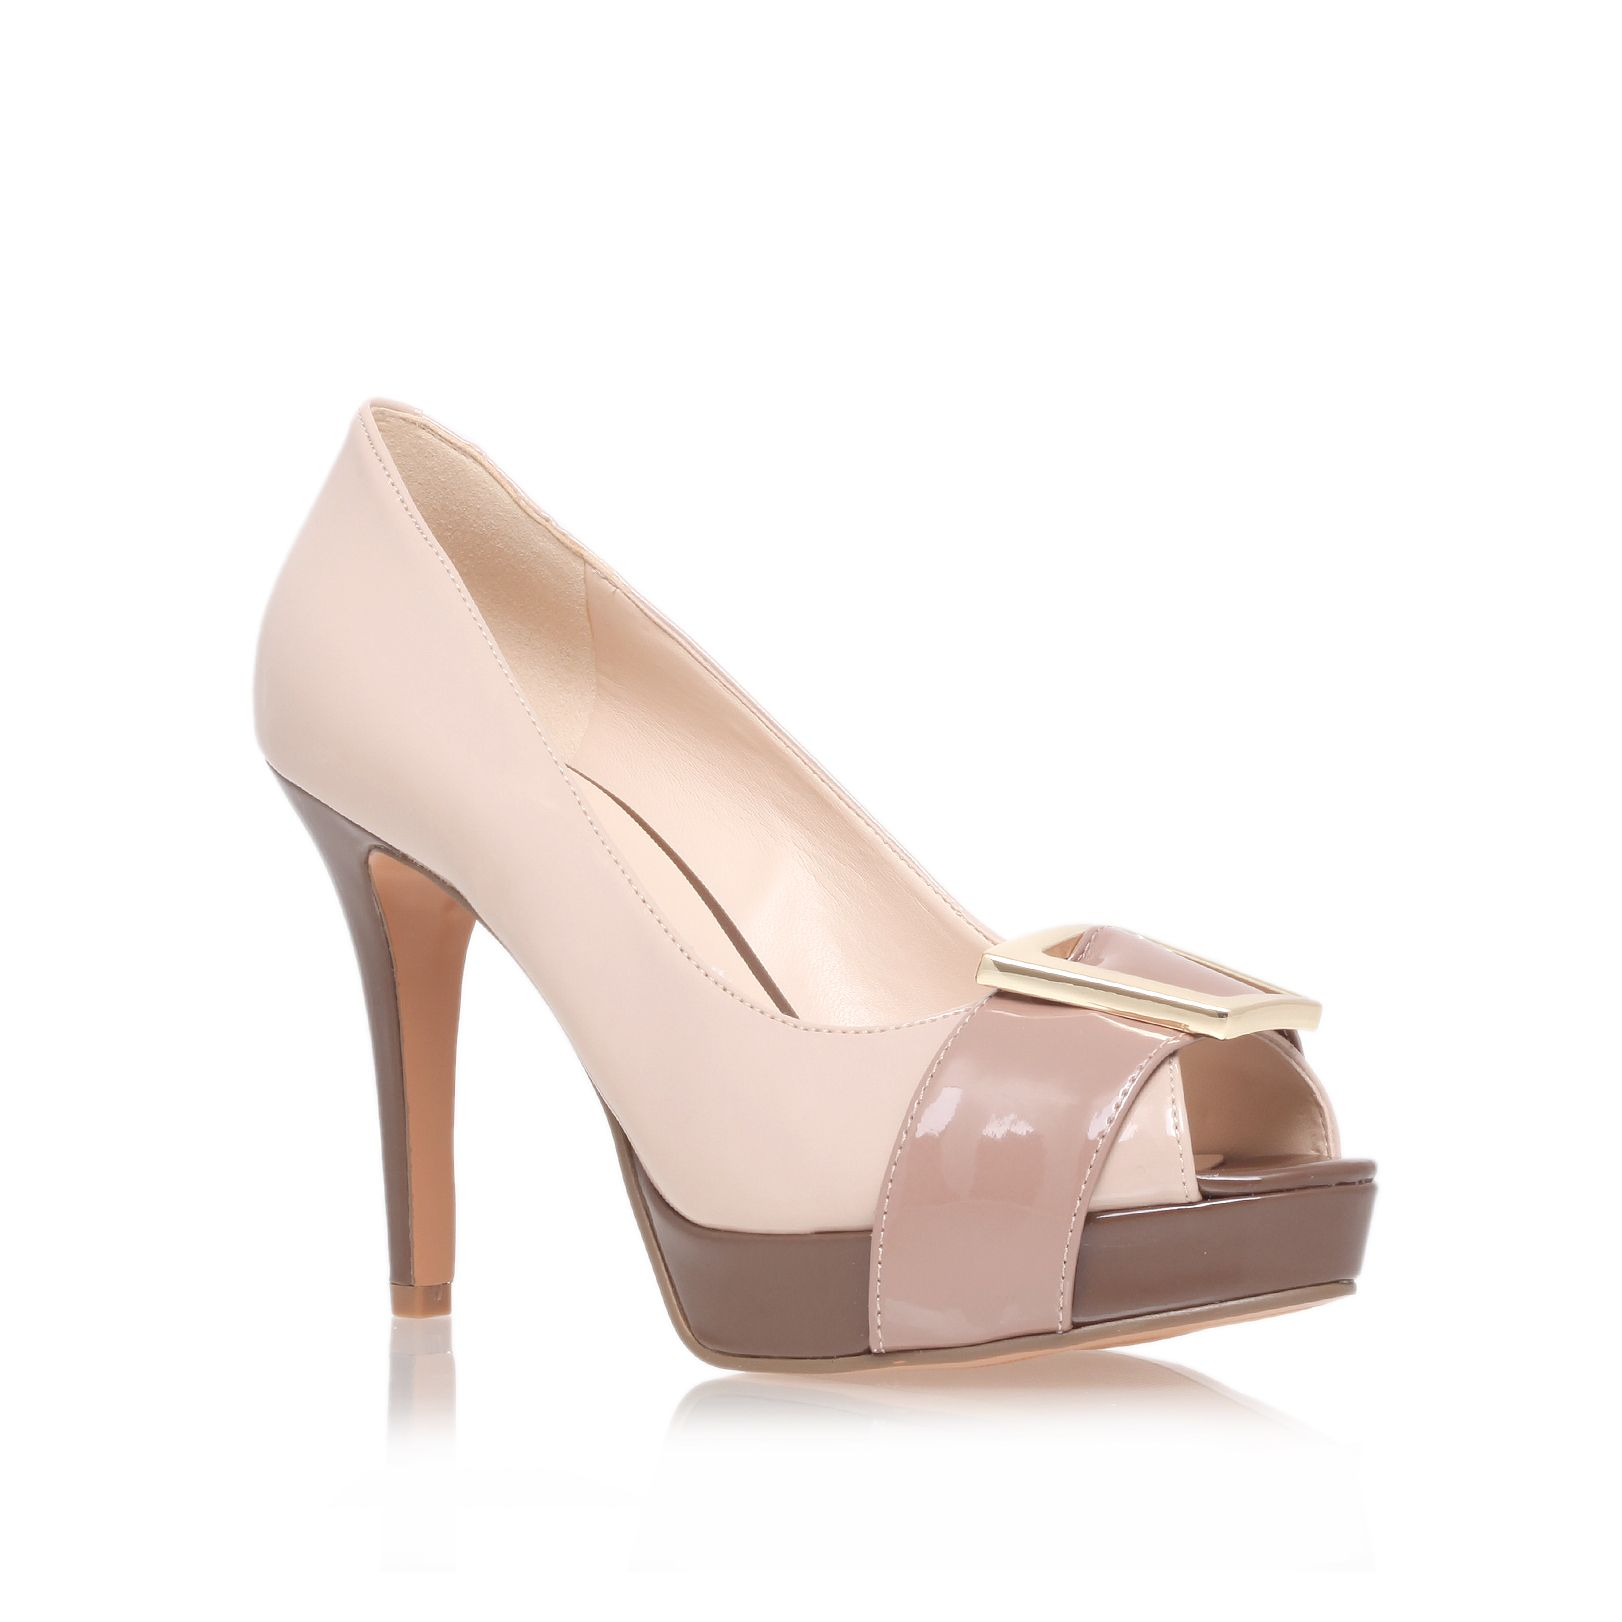 Cassilina high heel court shoes